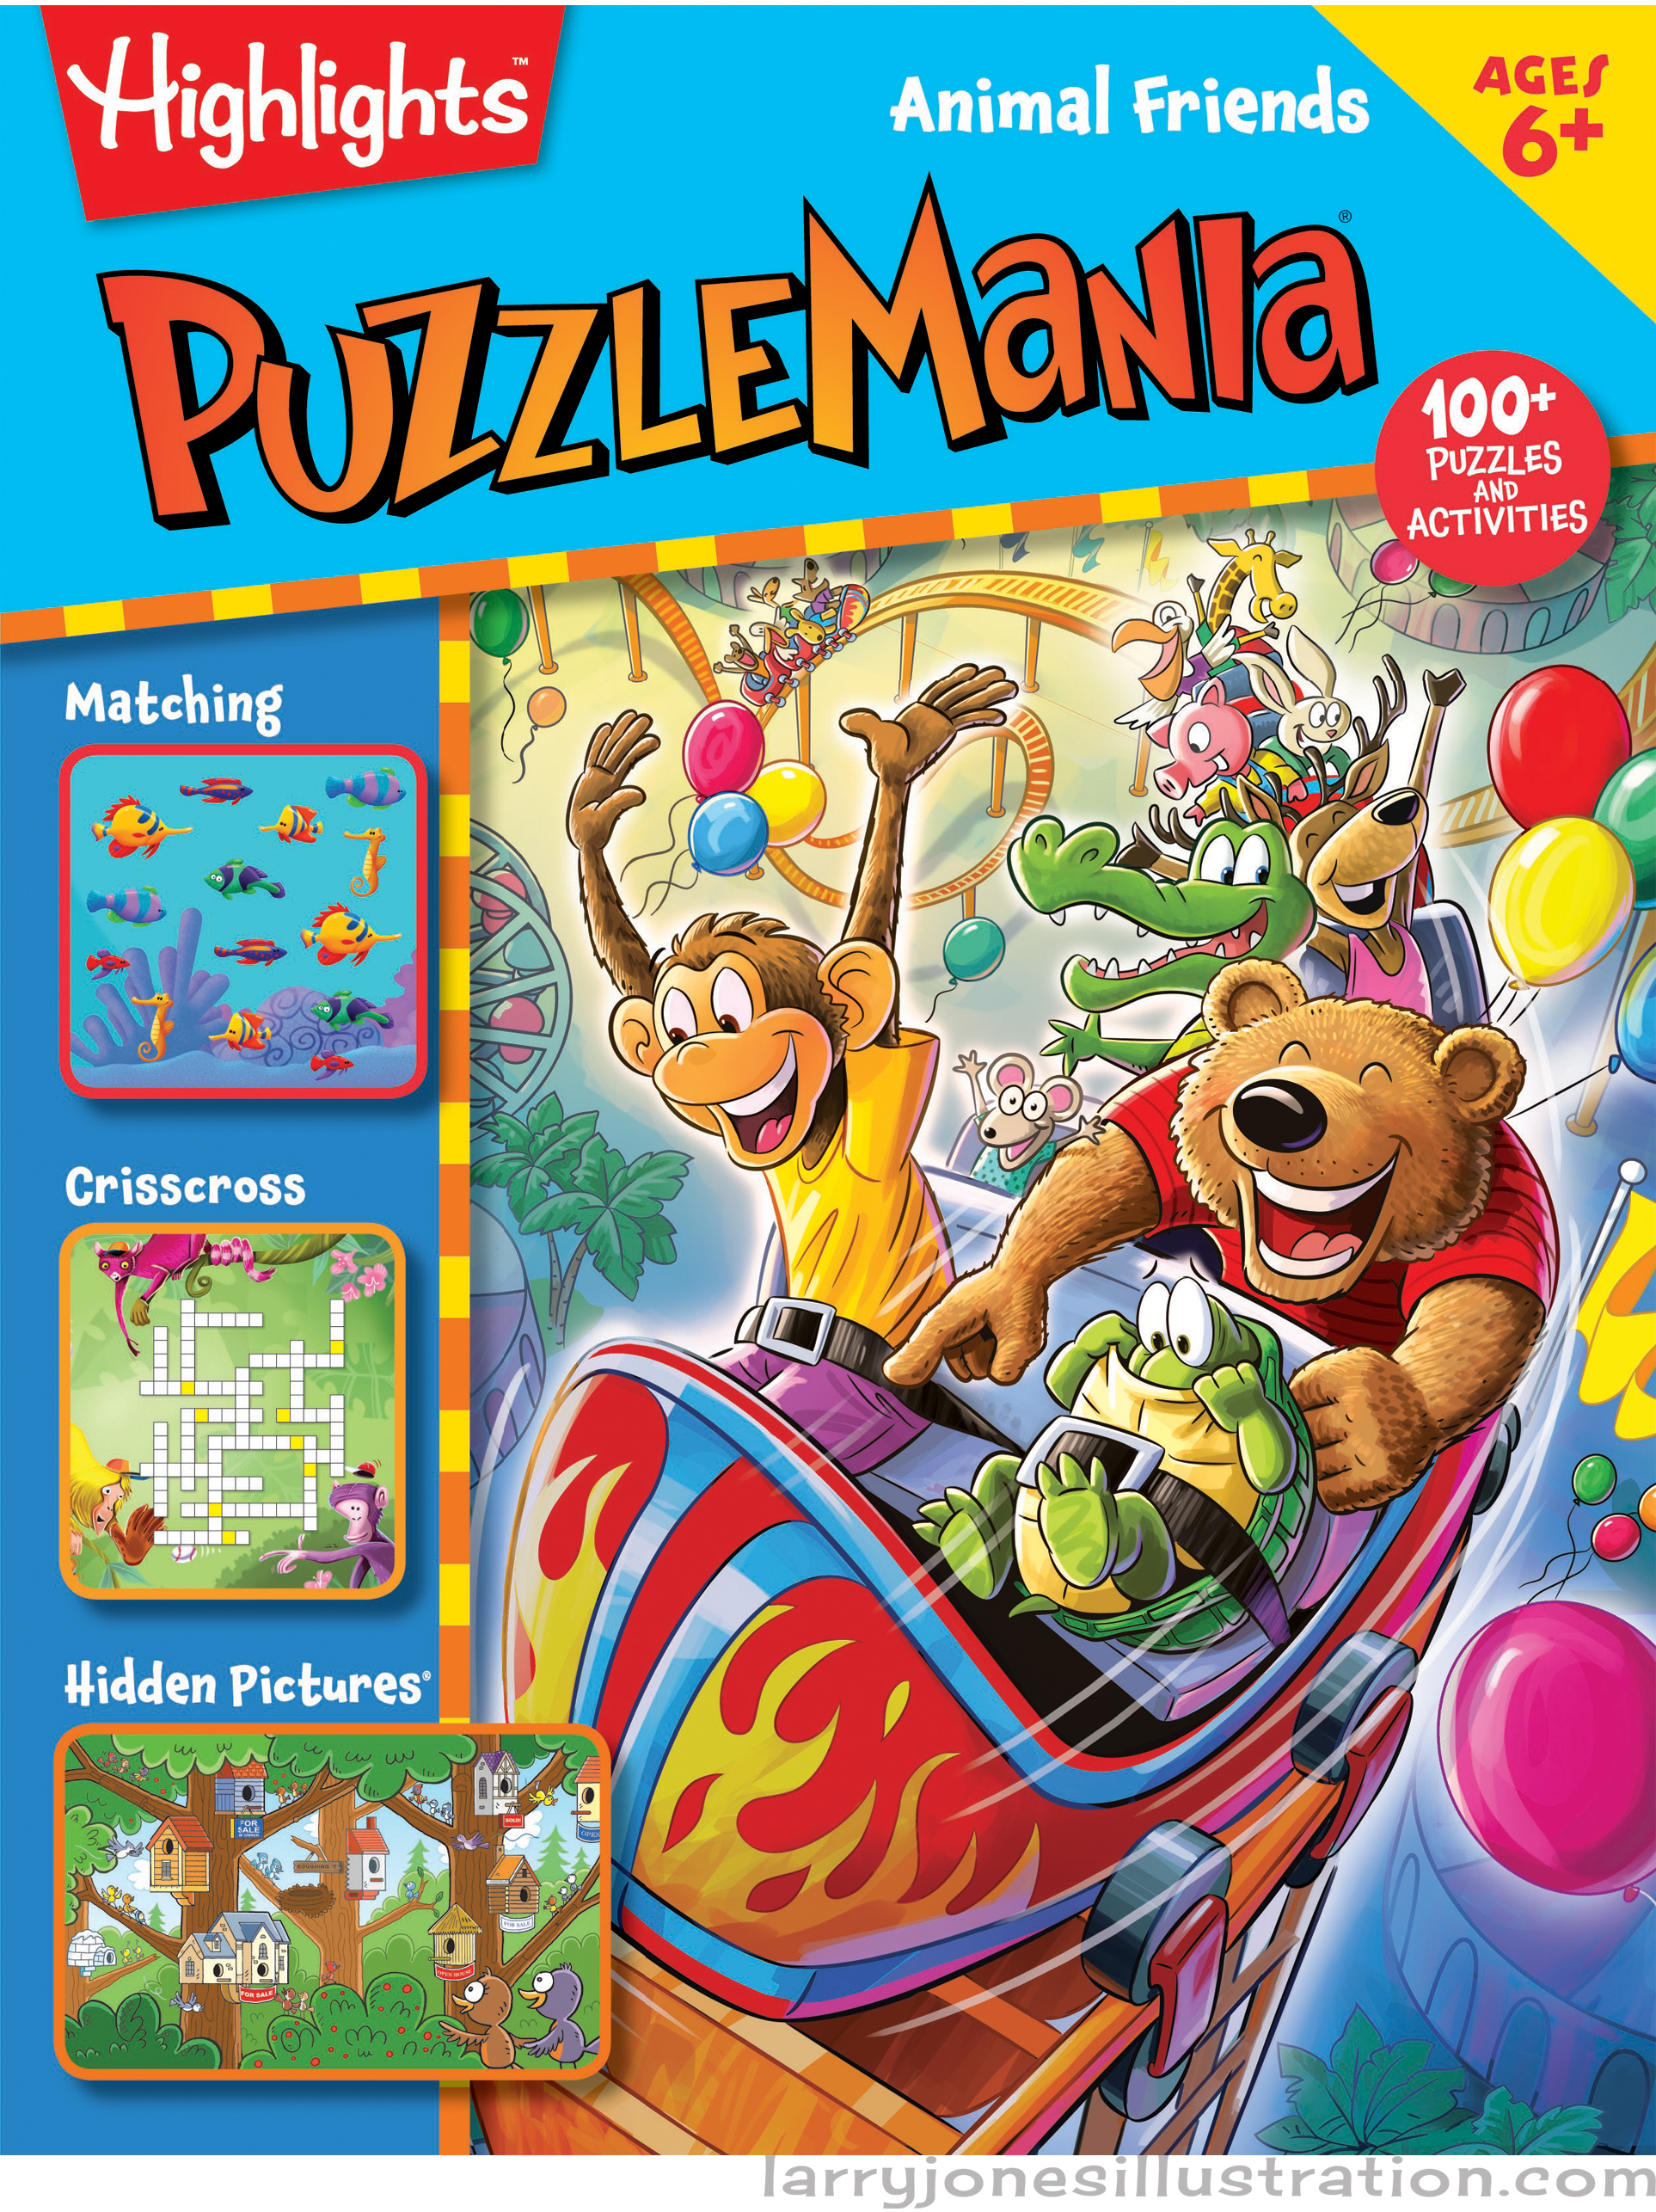 highlights-puzzlemania-illustration.jpg